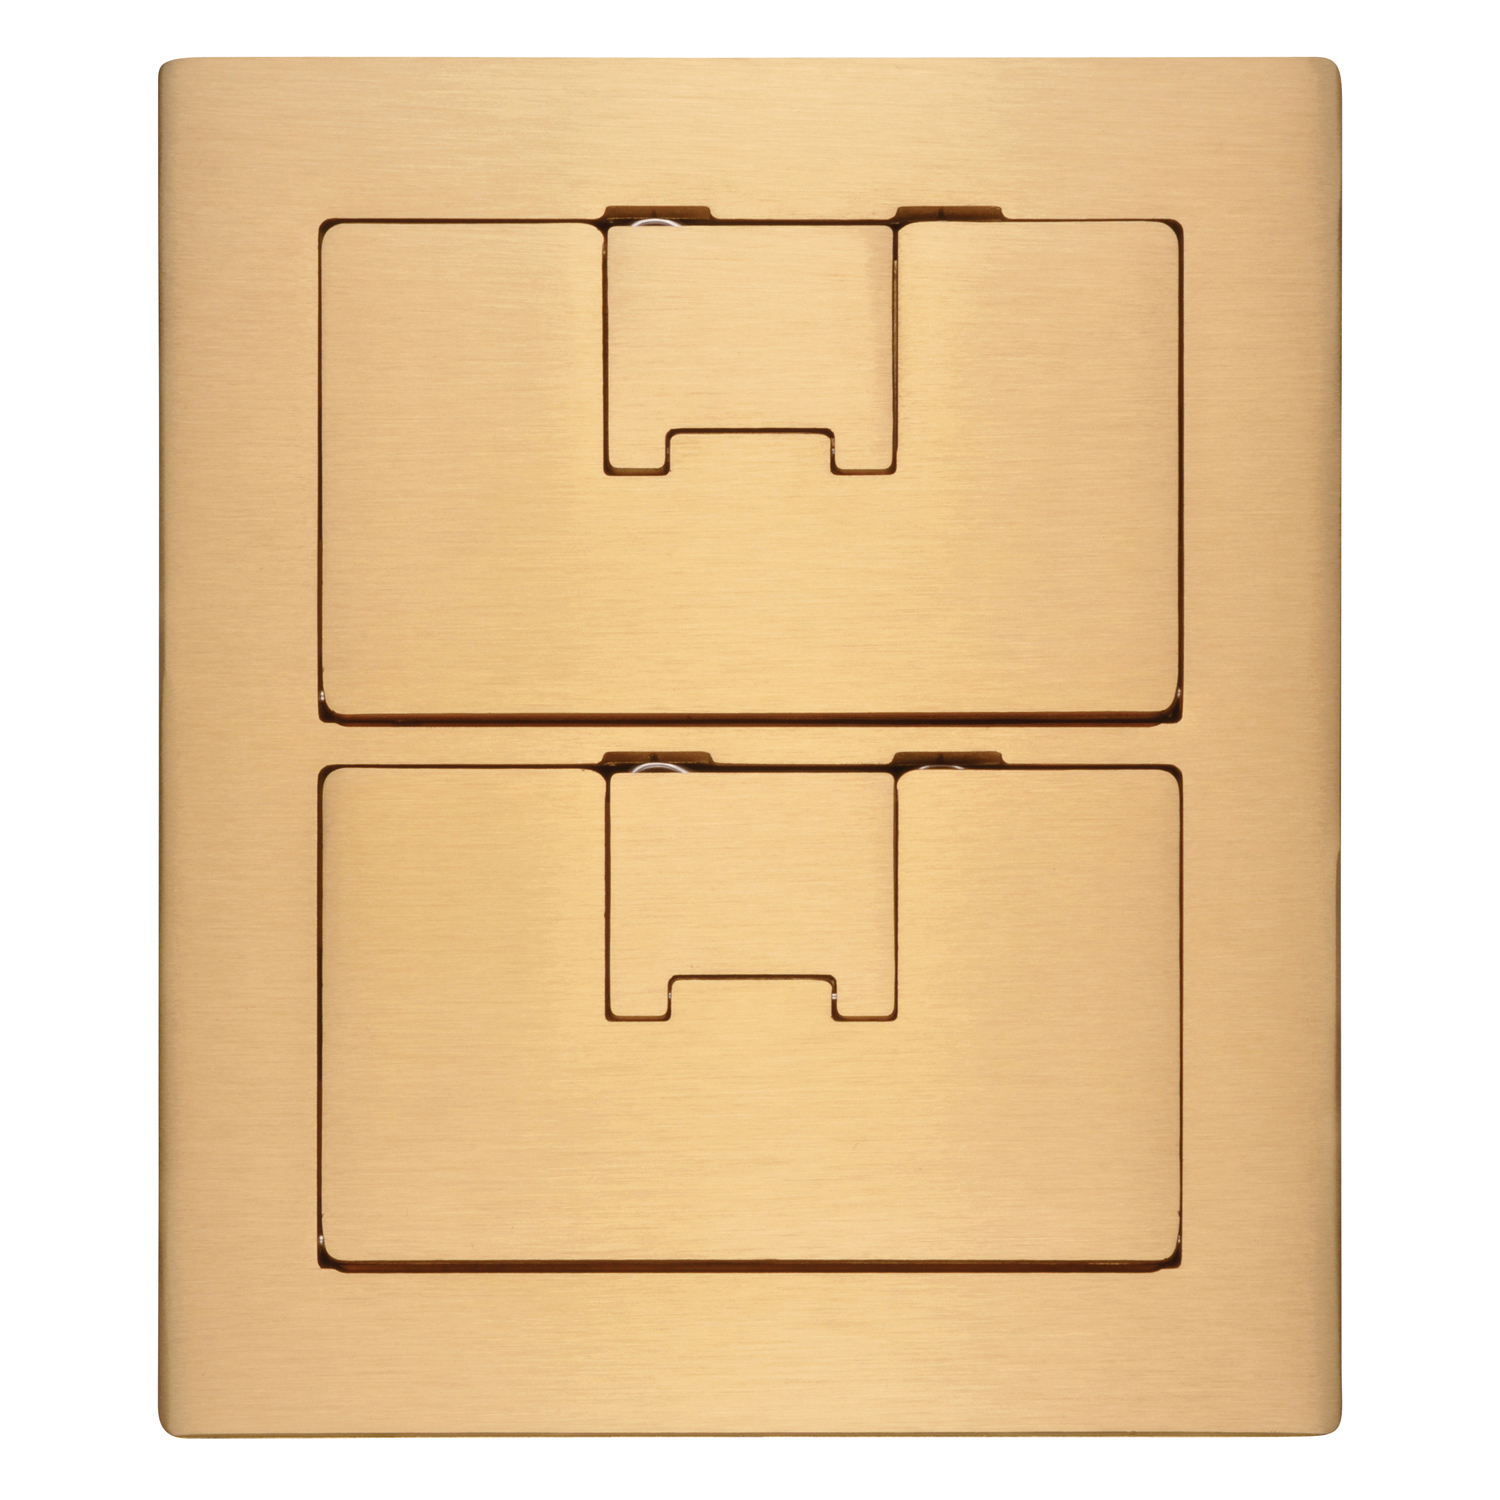 Carlon E9762BR Floor Box Cover, 8-1/4 in L x 7.13 in W, Brass